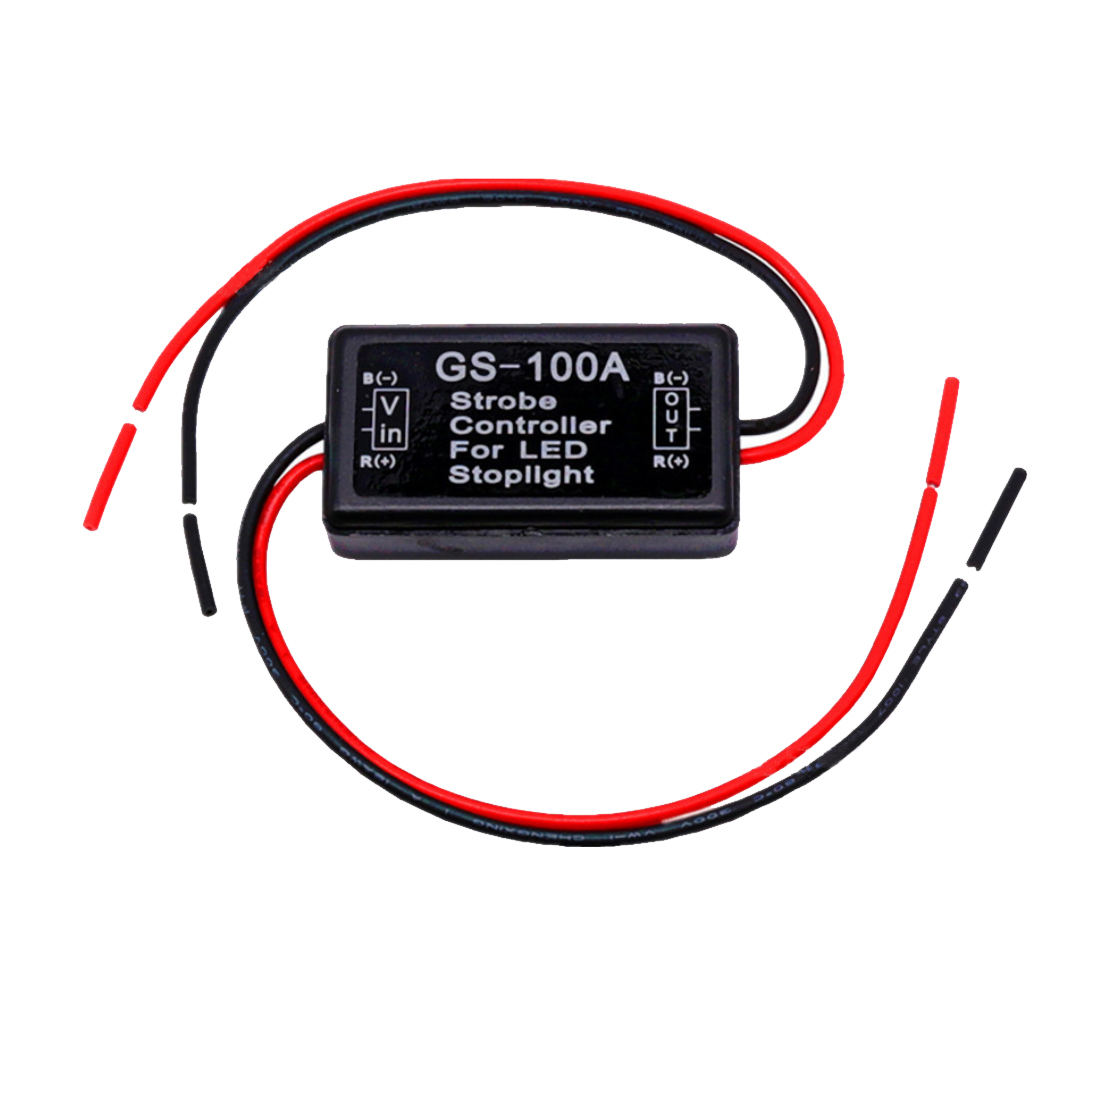 Tonewan GS-100A 12--24V Flash Strobe Controller Flasher  For LED Flashing Back Rear Brake Stop Light Lamp Car Accessories